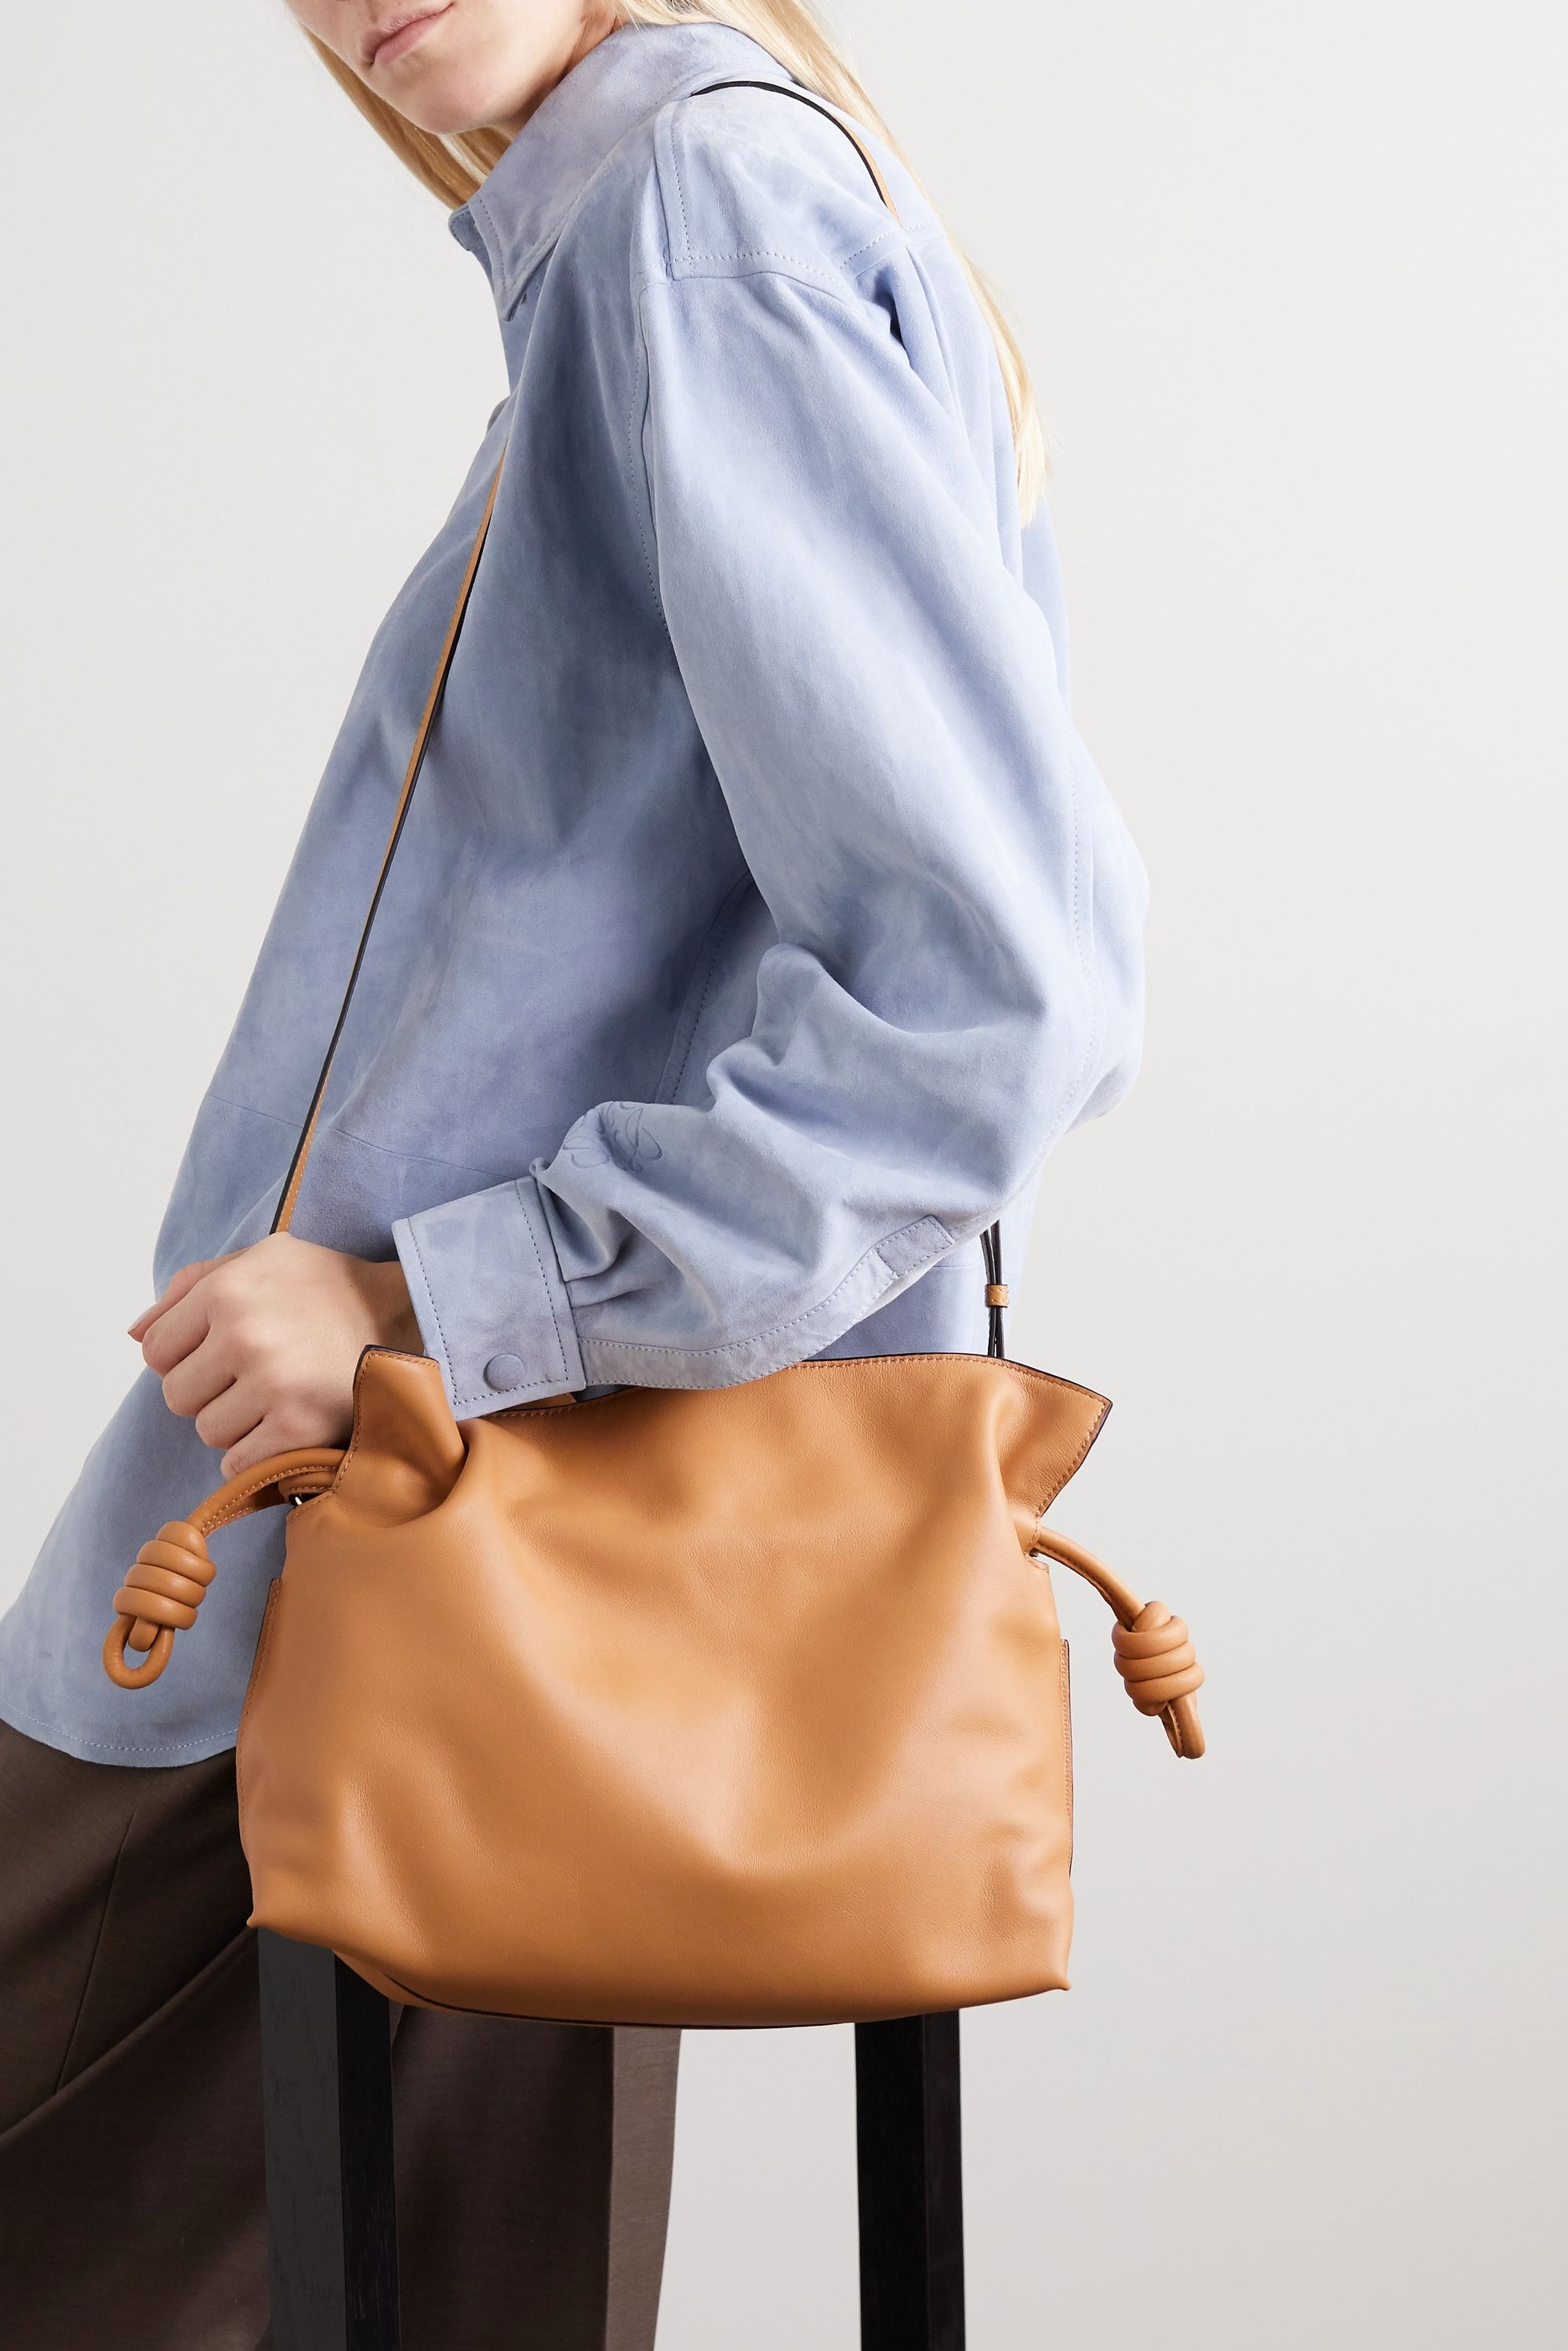 Camel Flamenco leather clutch | Loewe | NET-A-PORTER